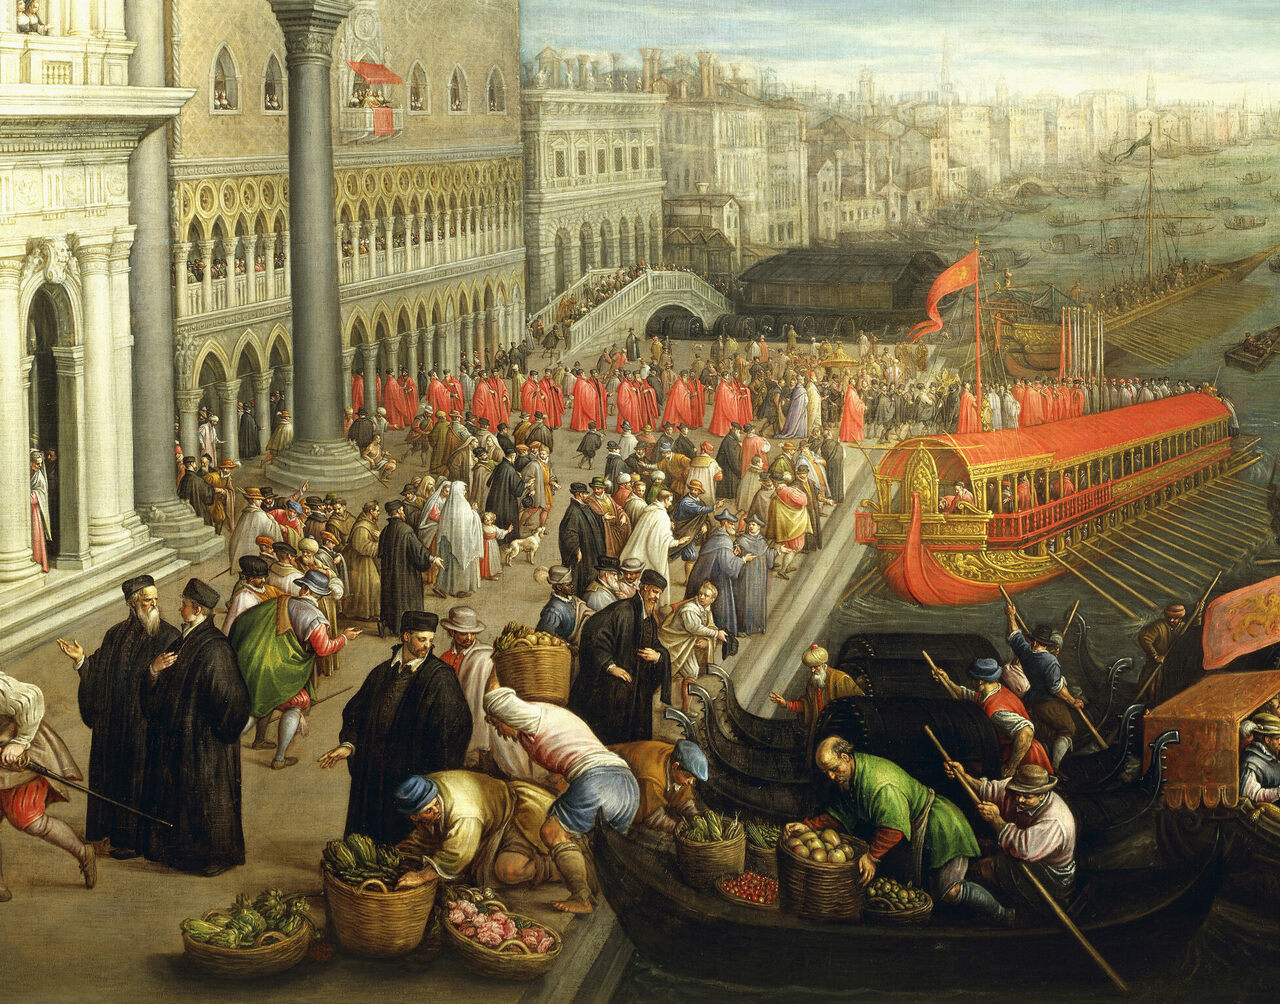 The banks of the Schiavoni in Venice, painted by artist Leandro Bassano (1557-1622).